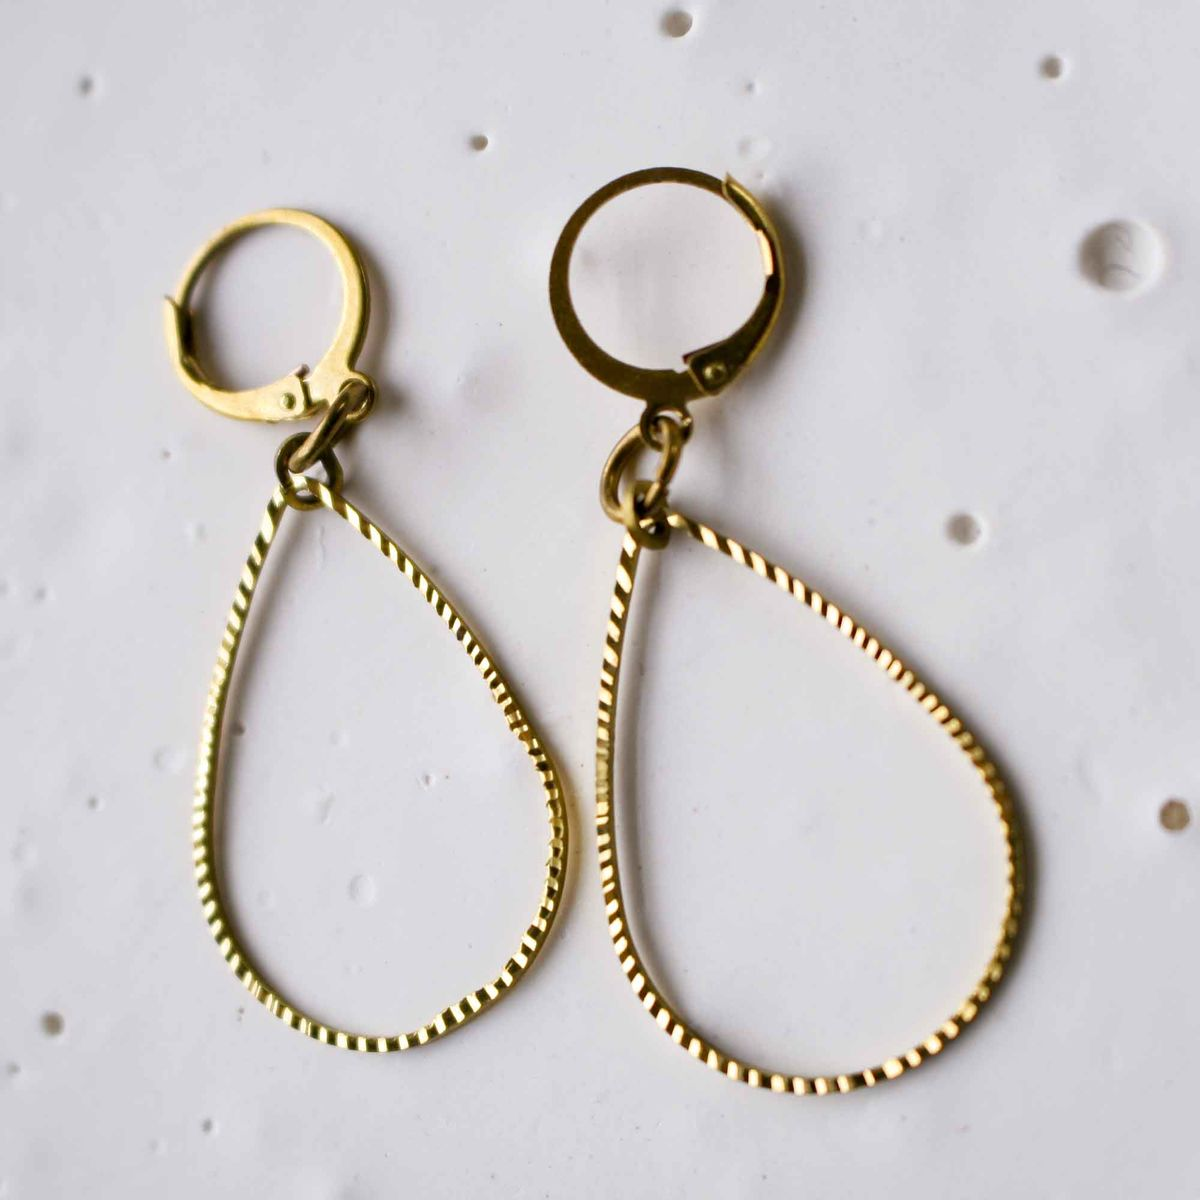 Teardrop Earrings - product images  of